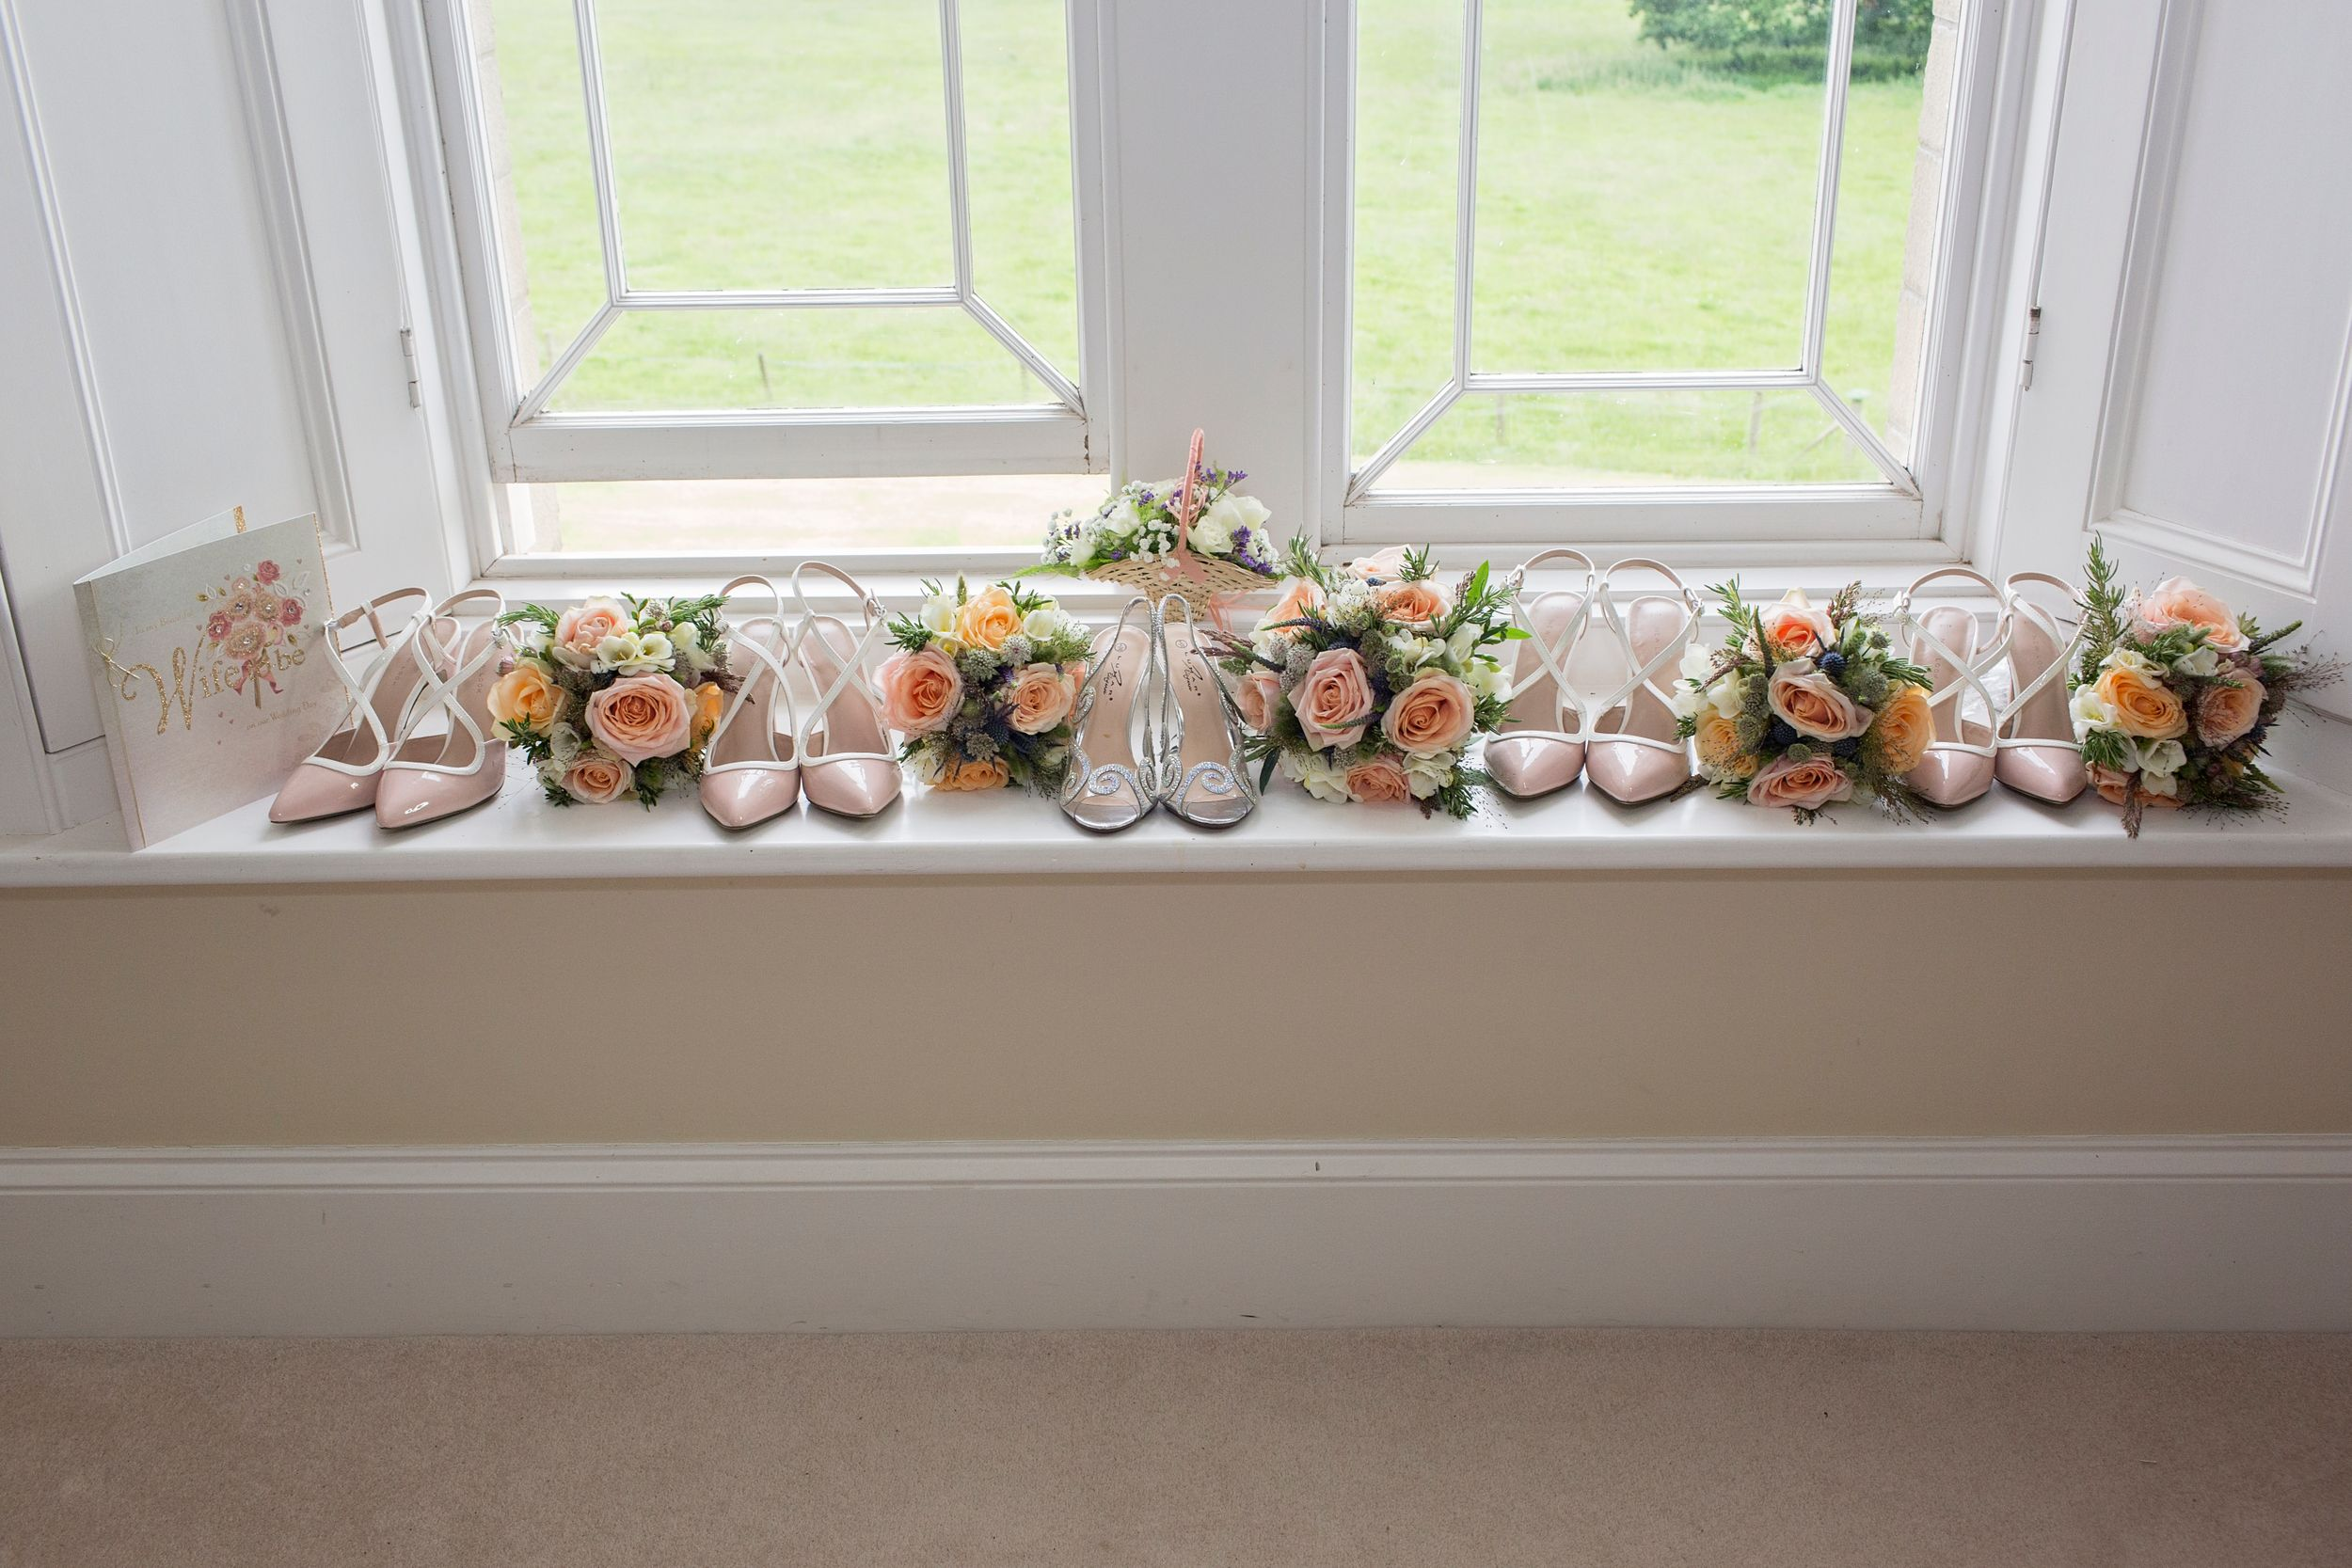 wedding flowers on the window sill at St Tewdrics Wedding